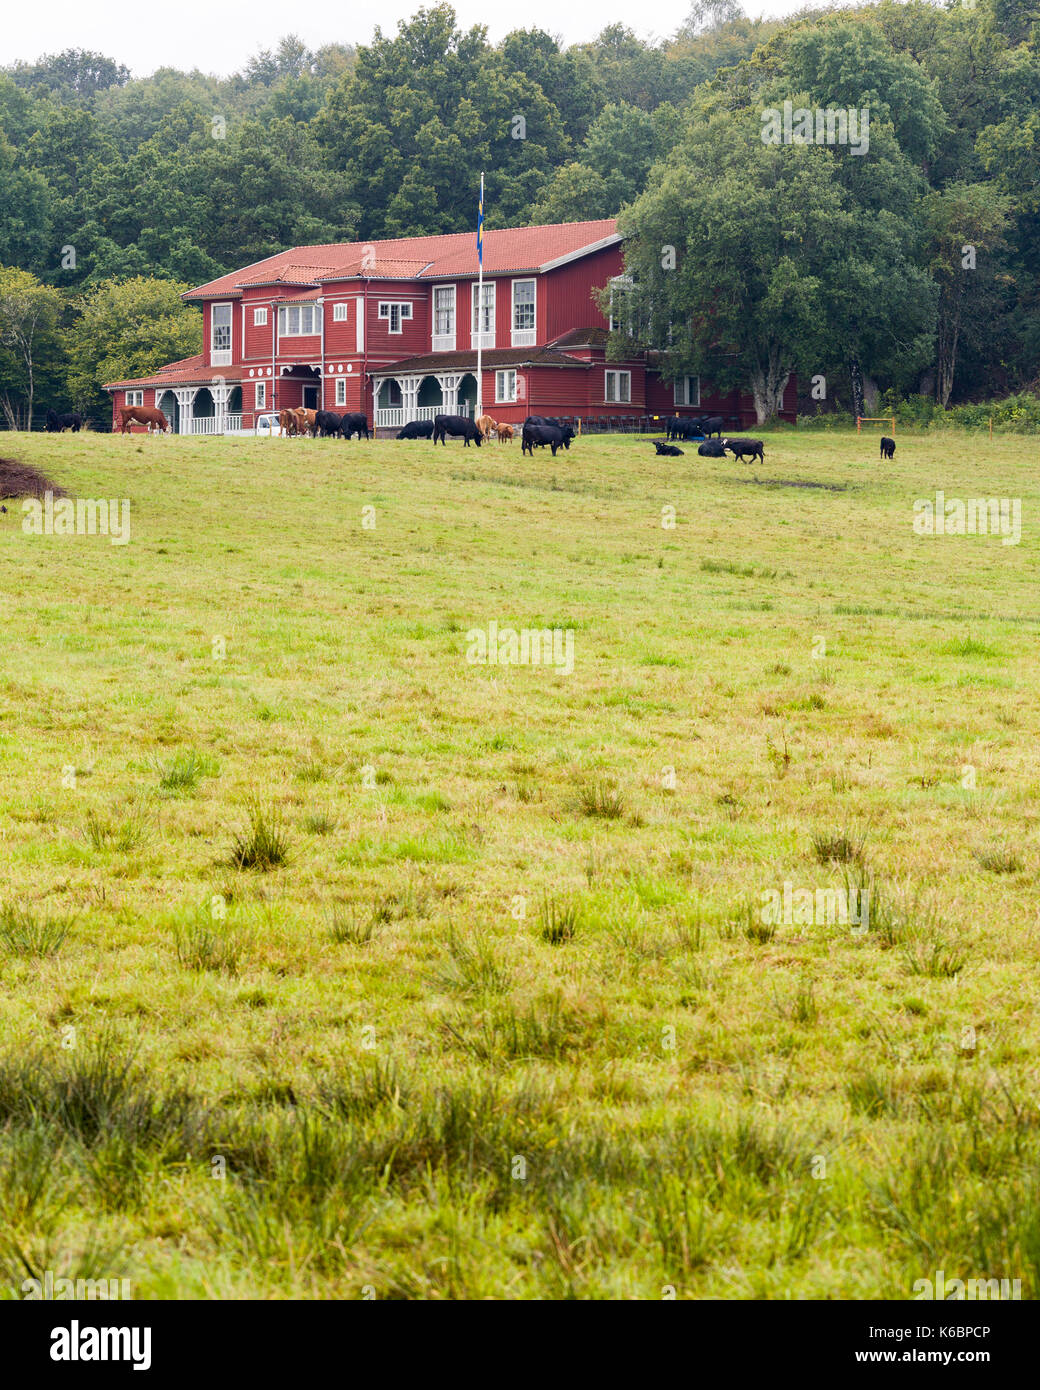 Old large typically swedish red wooden house, now serving as a Nääs Banquet Hall, with cows grazing in pasture outside  Nääs Banquet Hall was built in 1906, primarily to be used for playing and dancing practise.  Model Release: No.  Property Release: No. - Stock Image